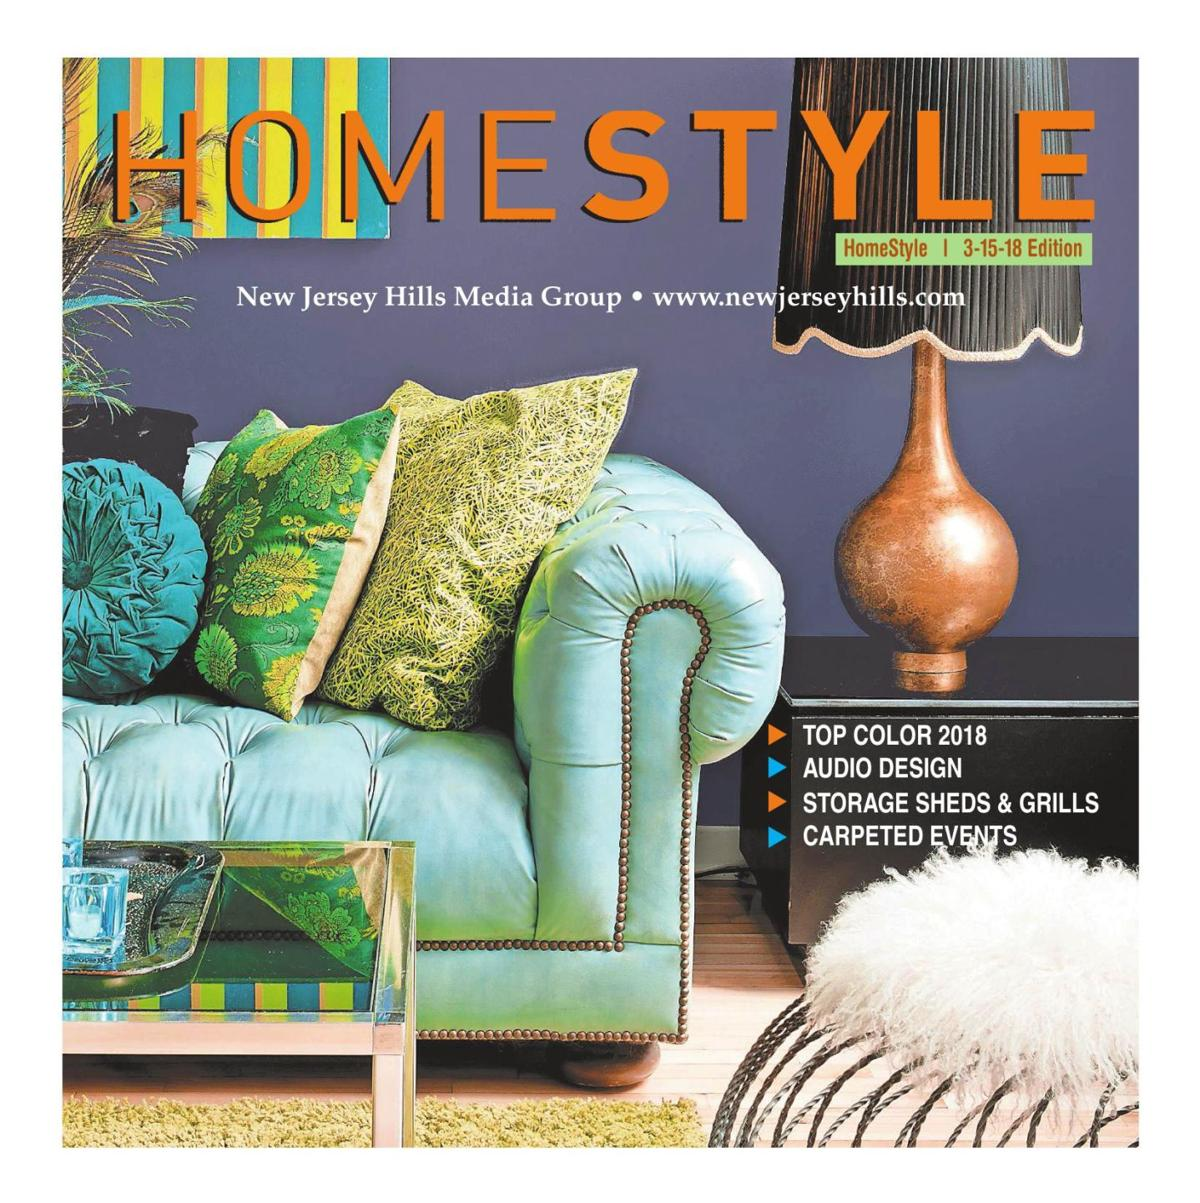 Homestyle - March 15, 2018